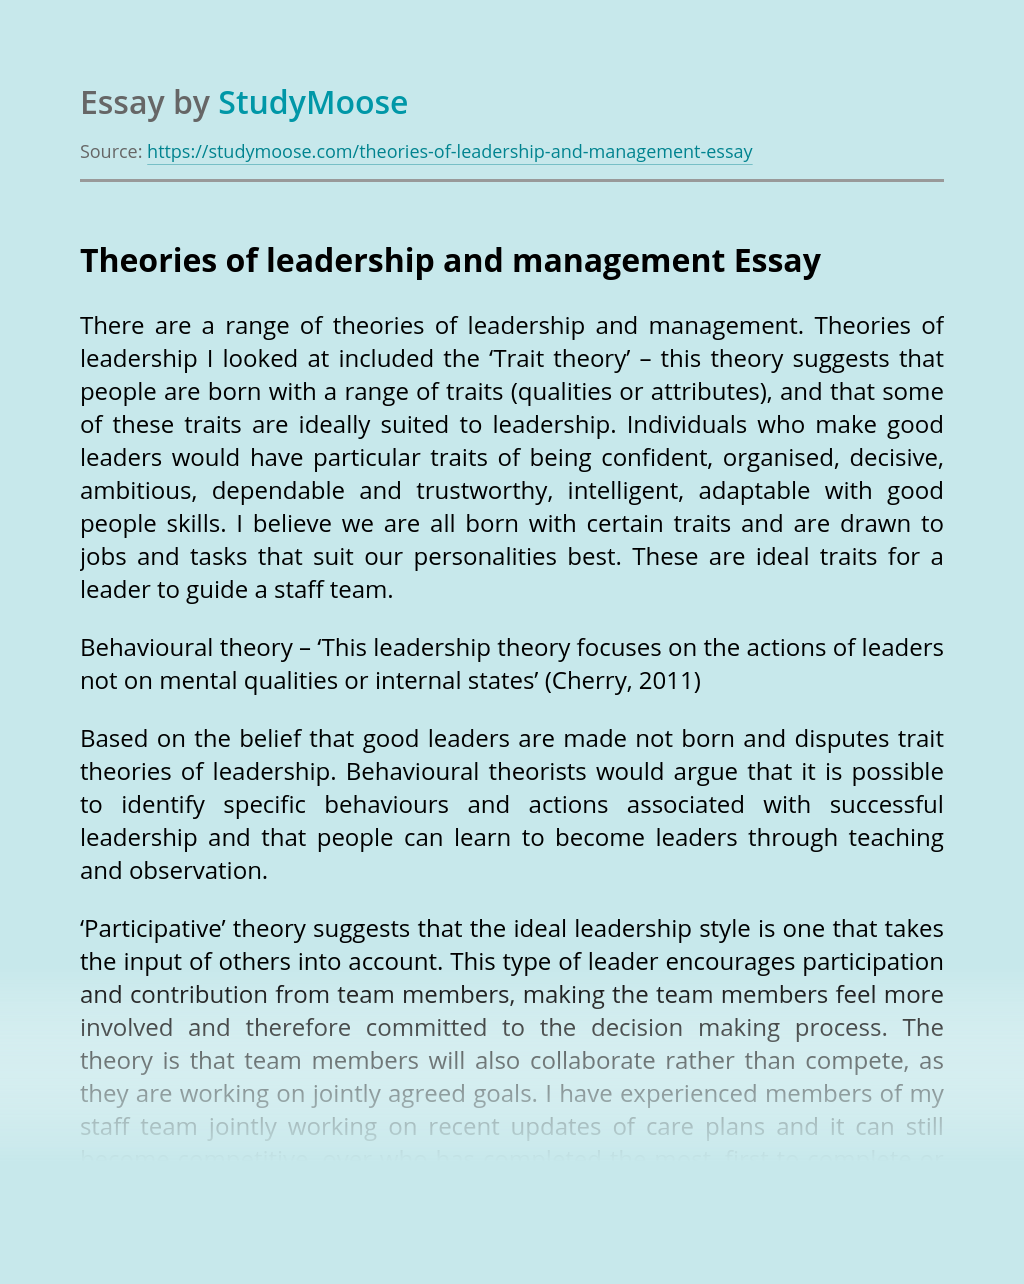 Theories of leadership and management